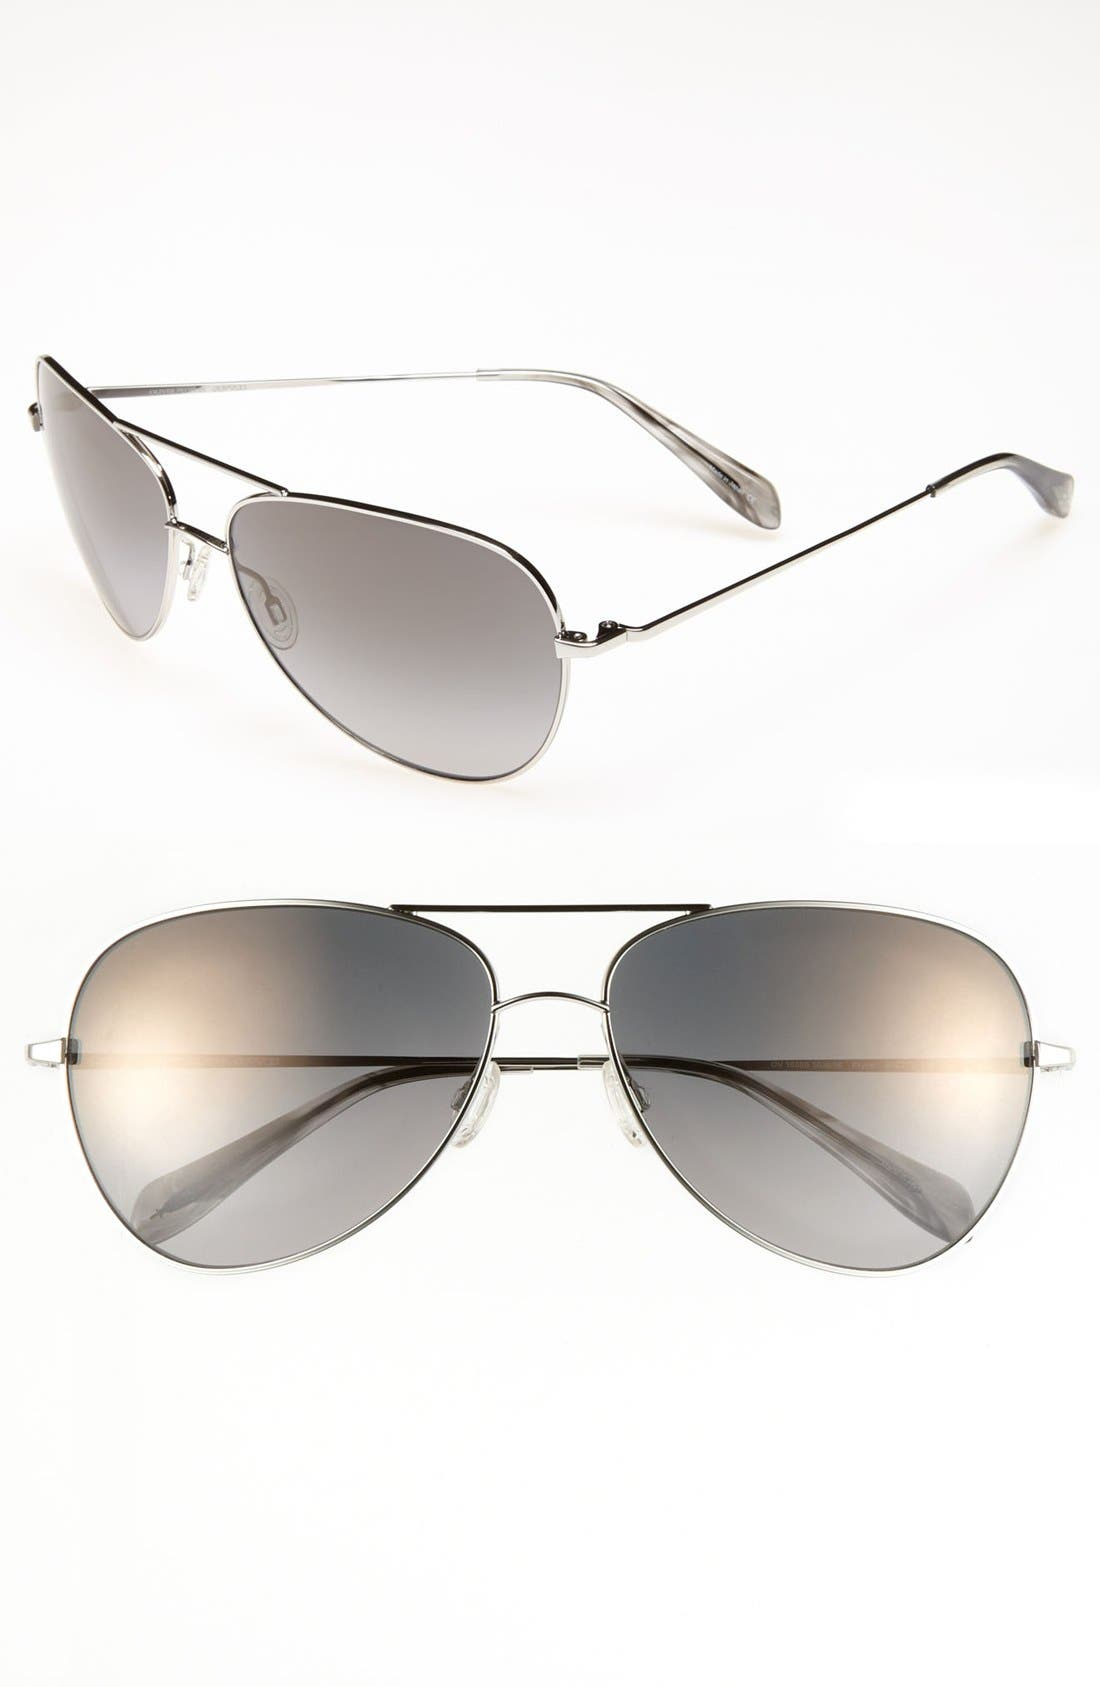 Main Image - Oliver Peoples Polarized Aviator Sunglasses